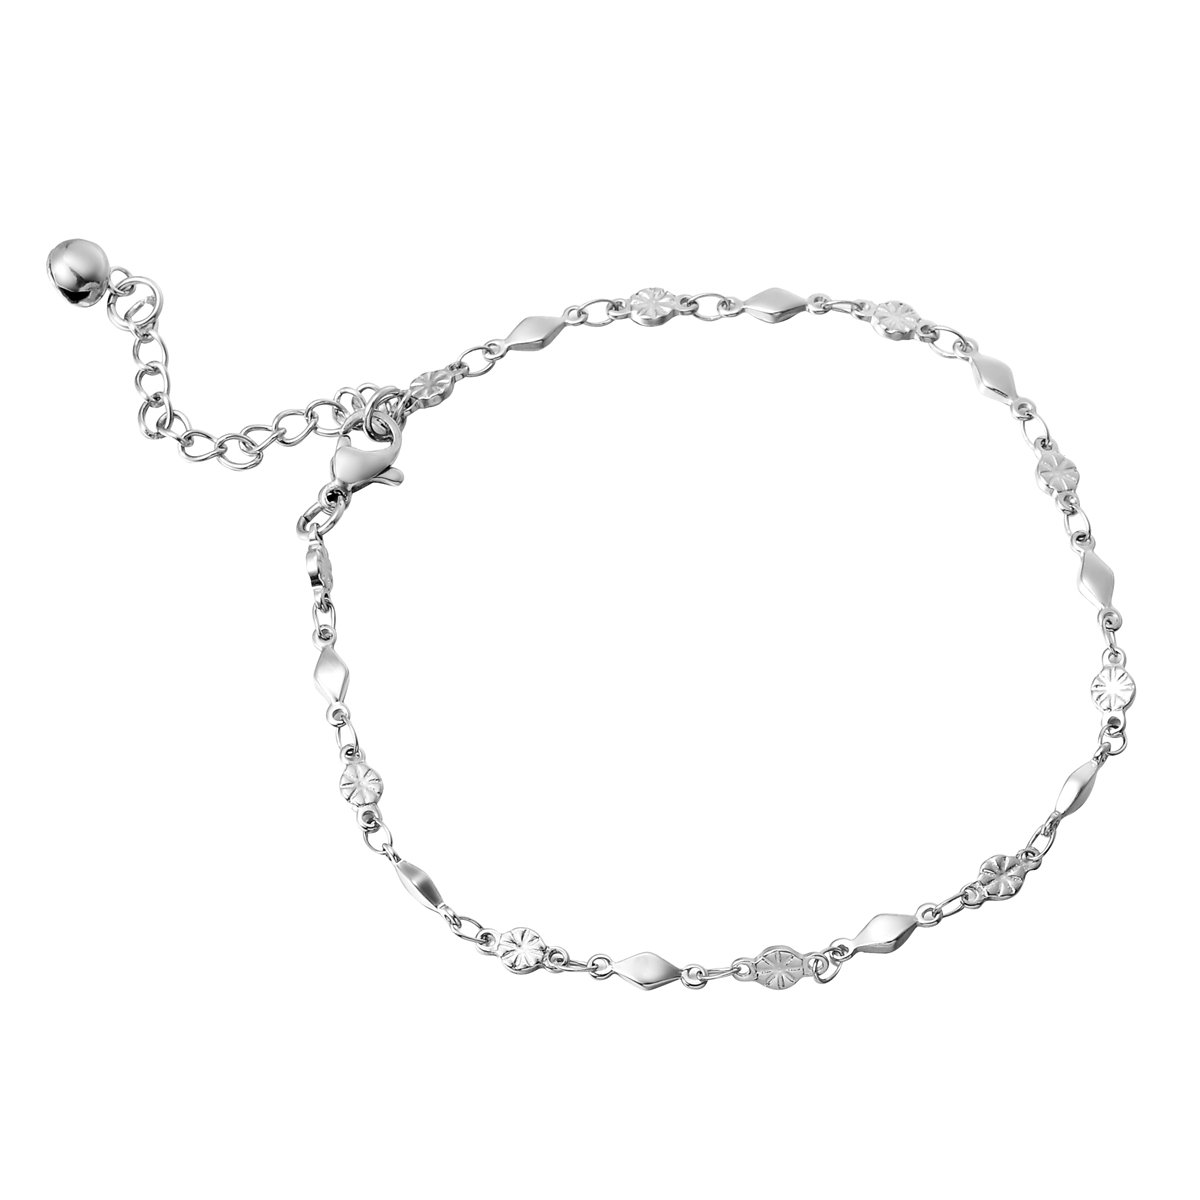 HooAMI Stainless Steel Silver Flower Bead Link Chain Anklet Adjustable 22cm+4cm TY BETY106659